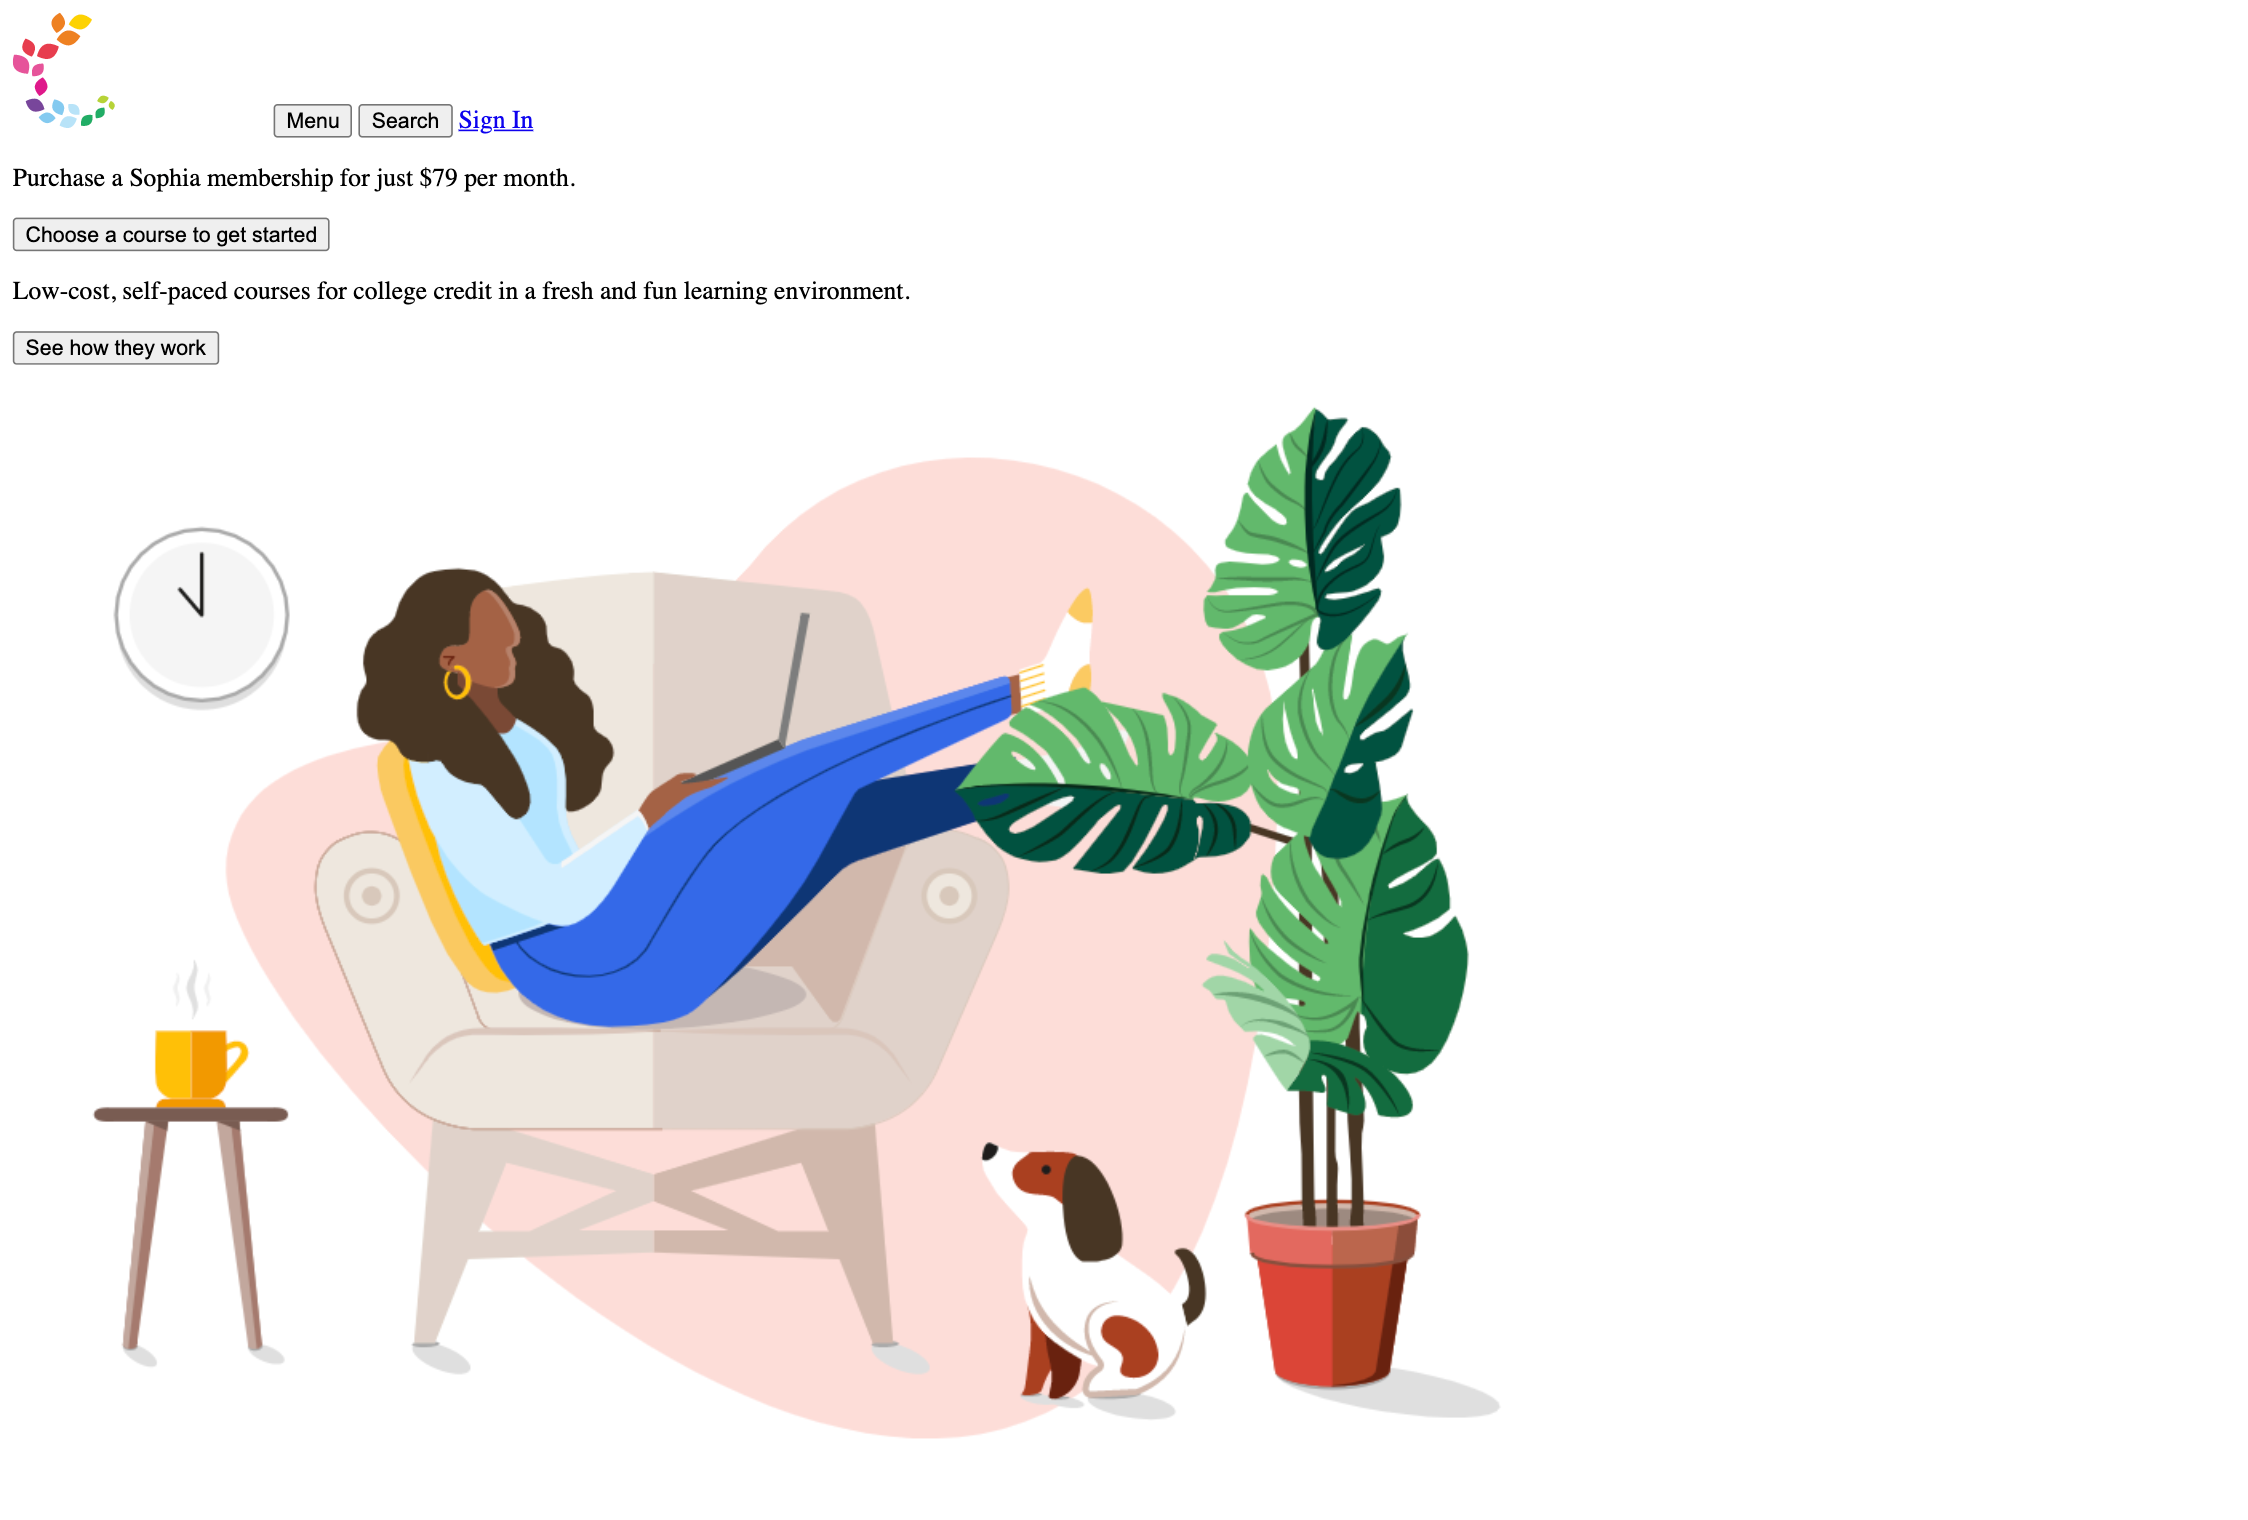 Image of Sophia homepage with person lounging in chair with a laptop without CSS text.